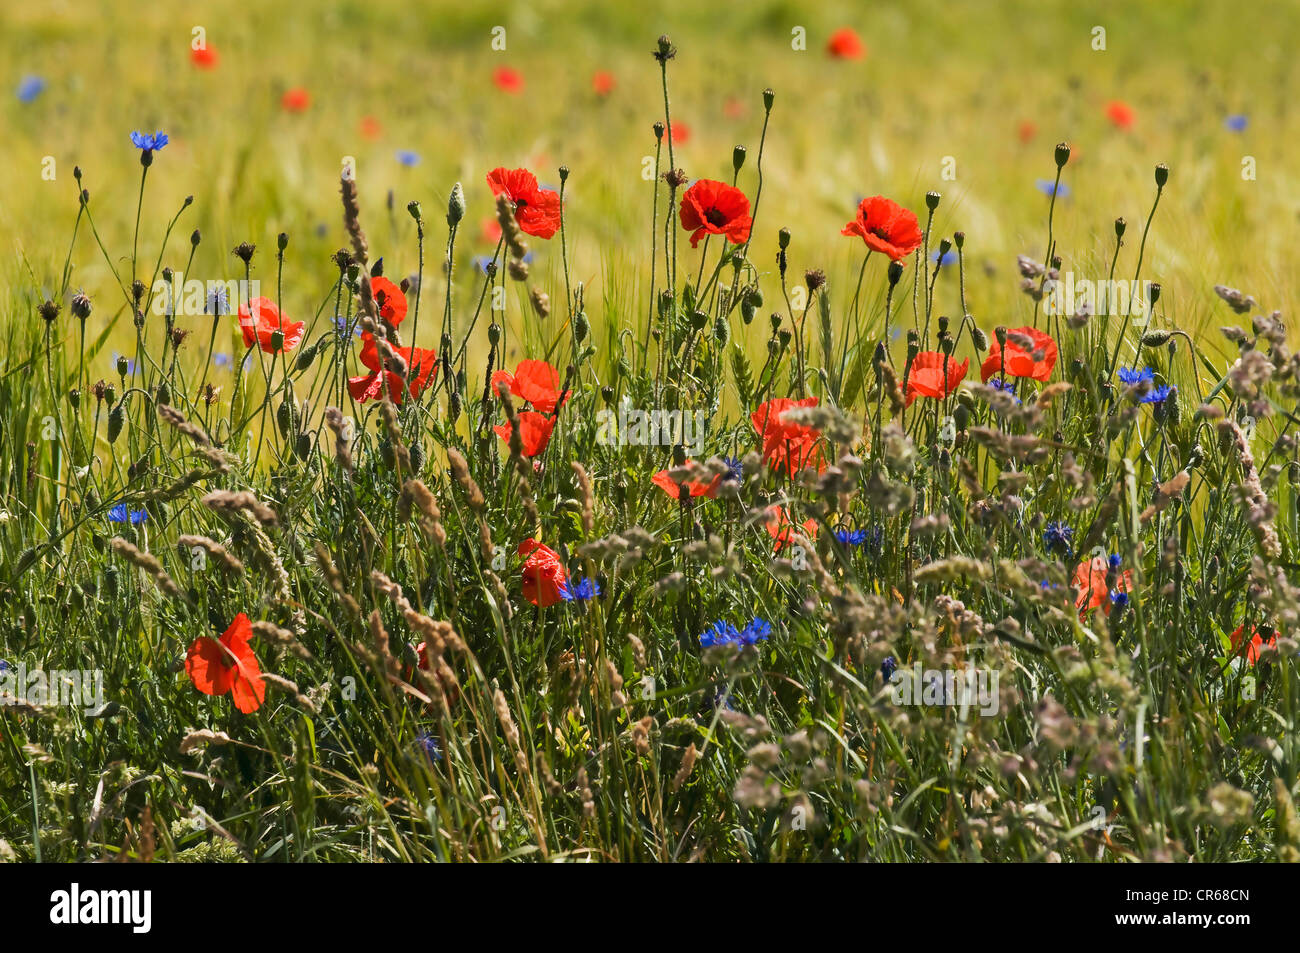 Natural edge of a field with flowering grasses and wild flowers, Poppies (Papaver rhoeas), Cornflower (Centaurea - Stock Image